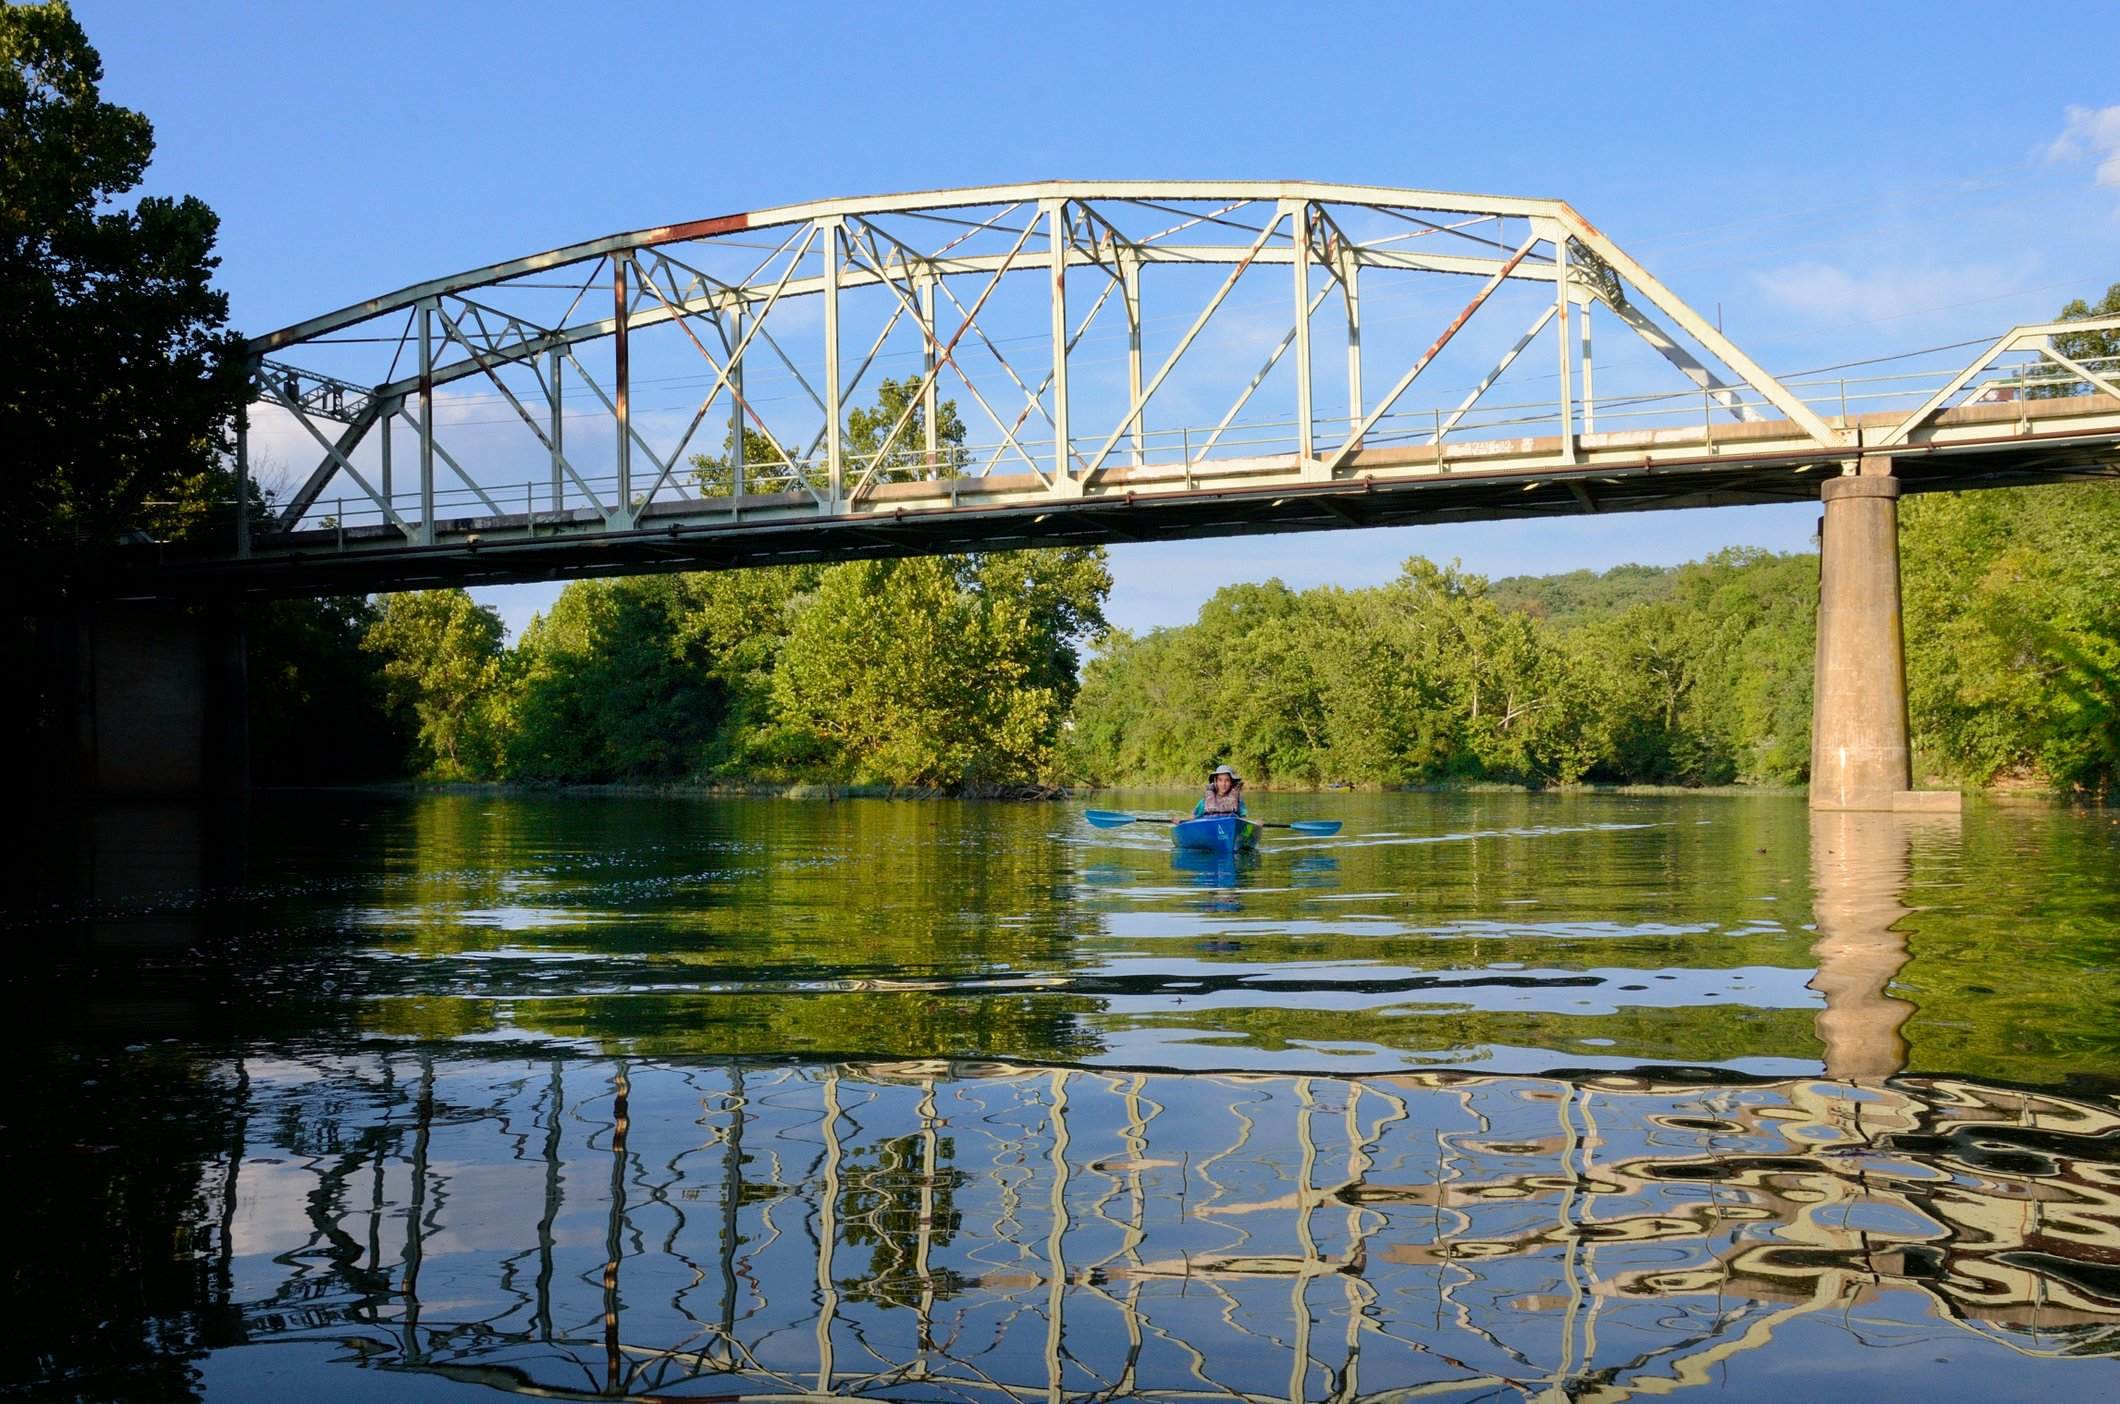 aA kayak passing under the old bridge, a part of the Galloway Creek Greenway and James River trail